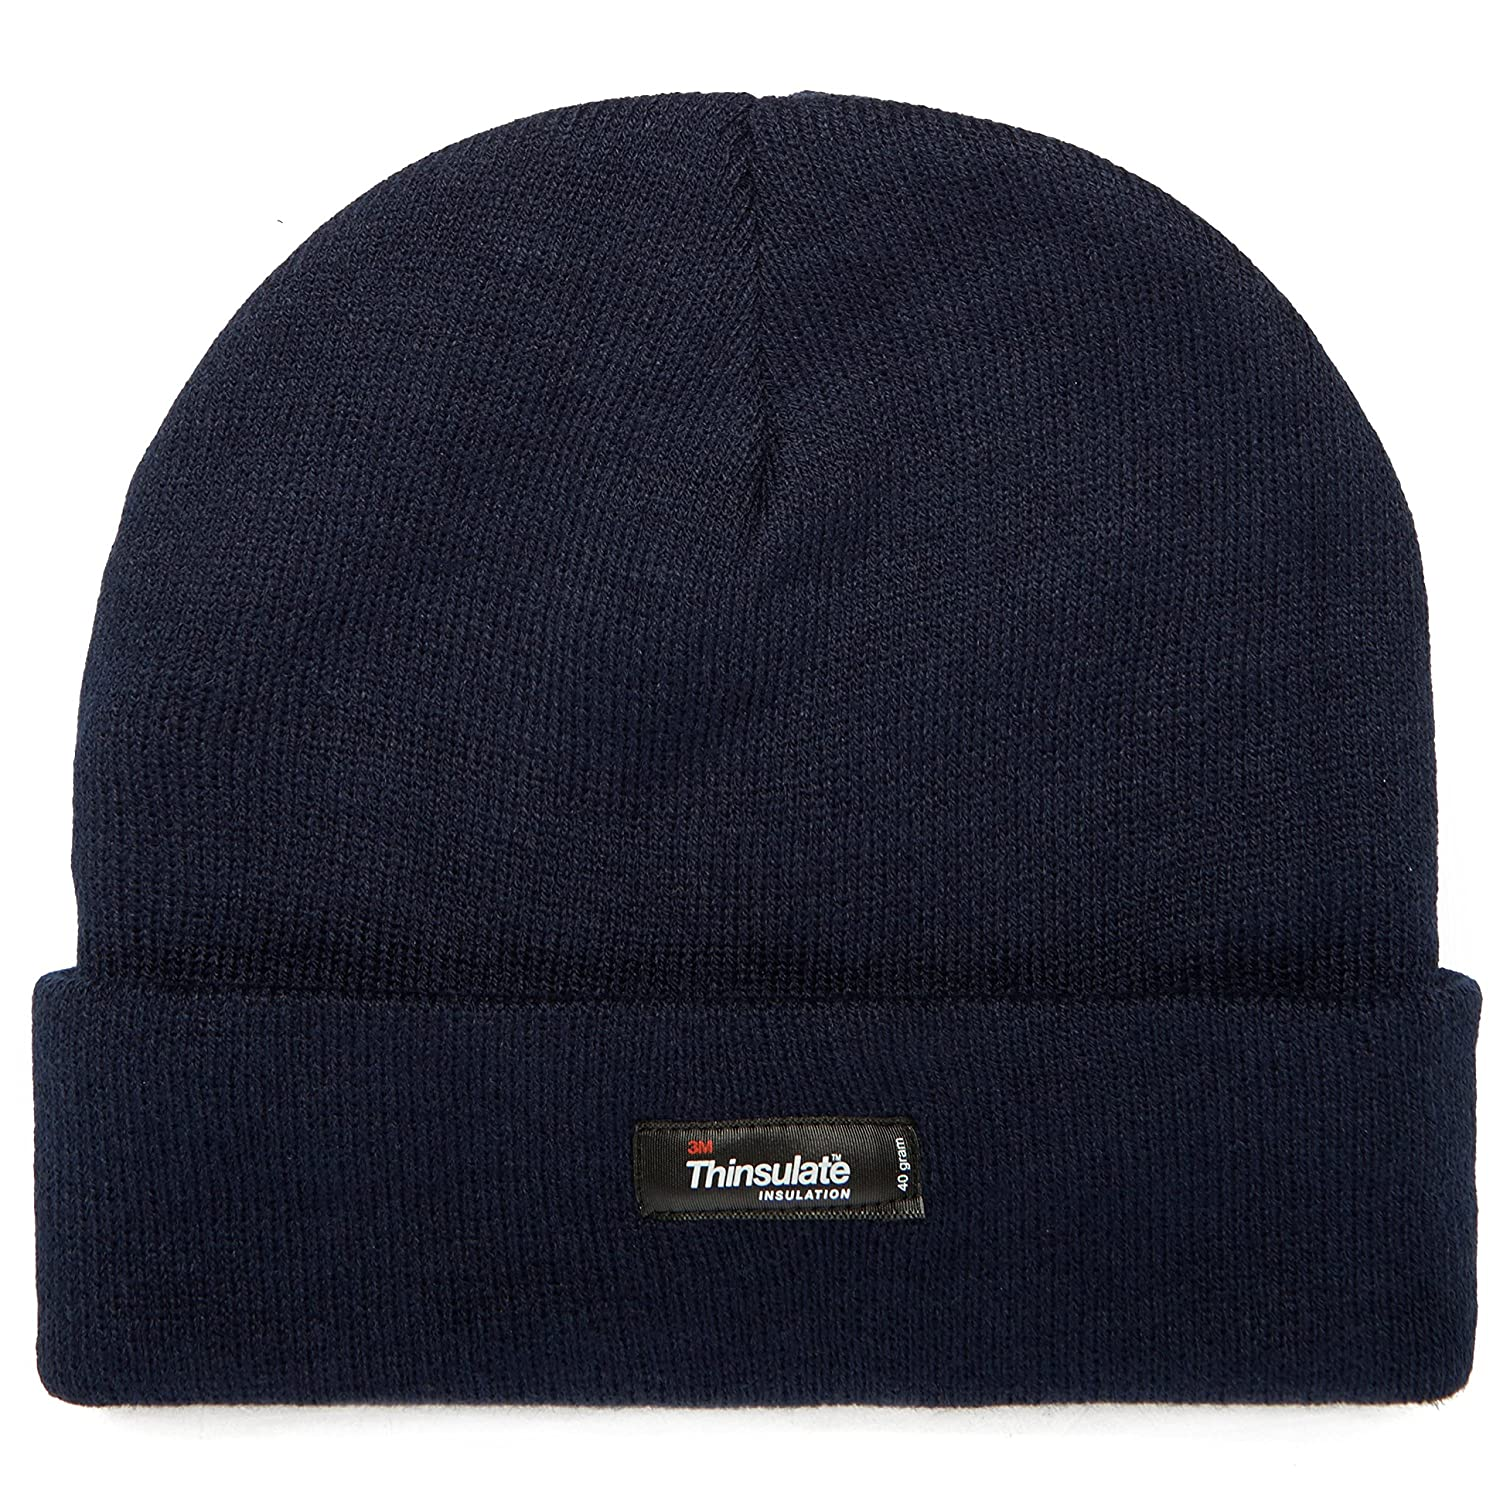 Mens Thinsulate Thermal Winter Hat Thinsuate PPT1